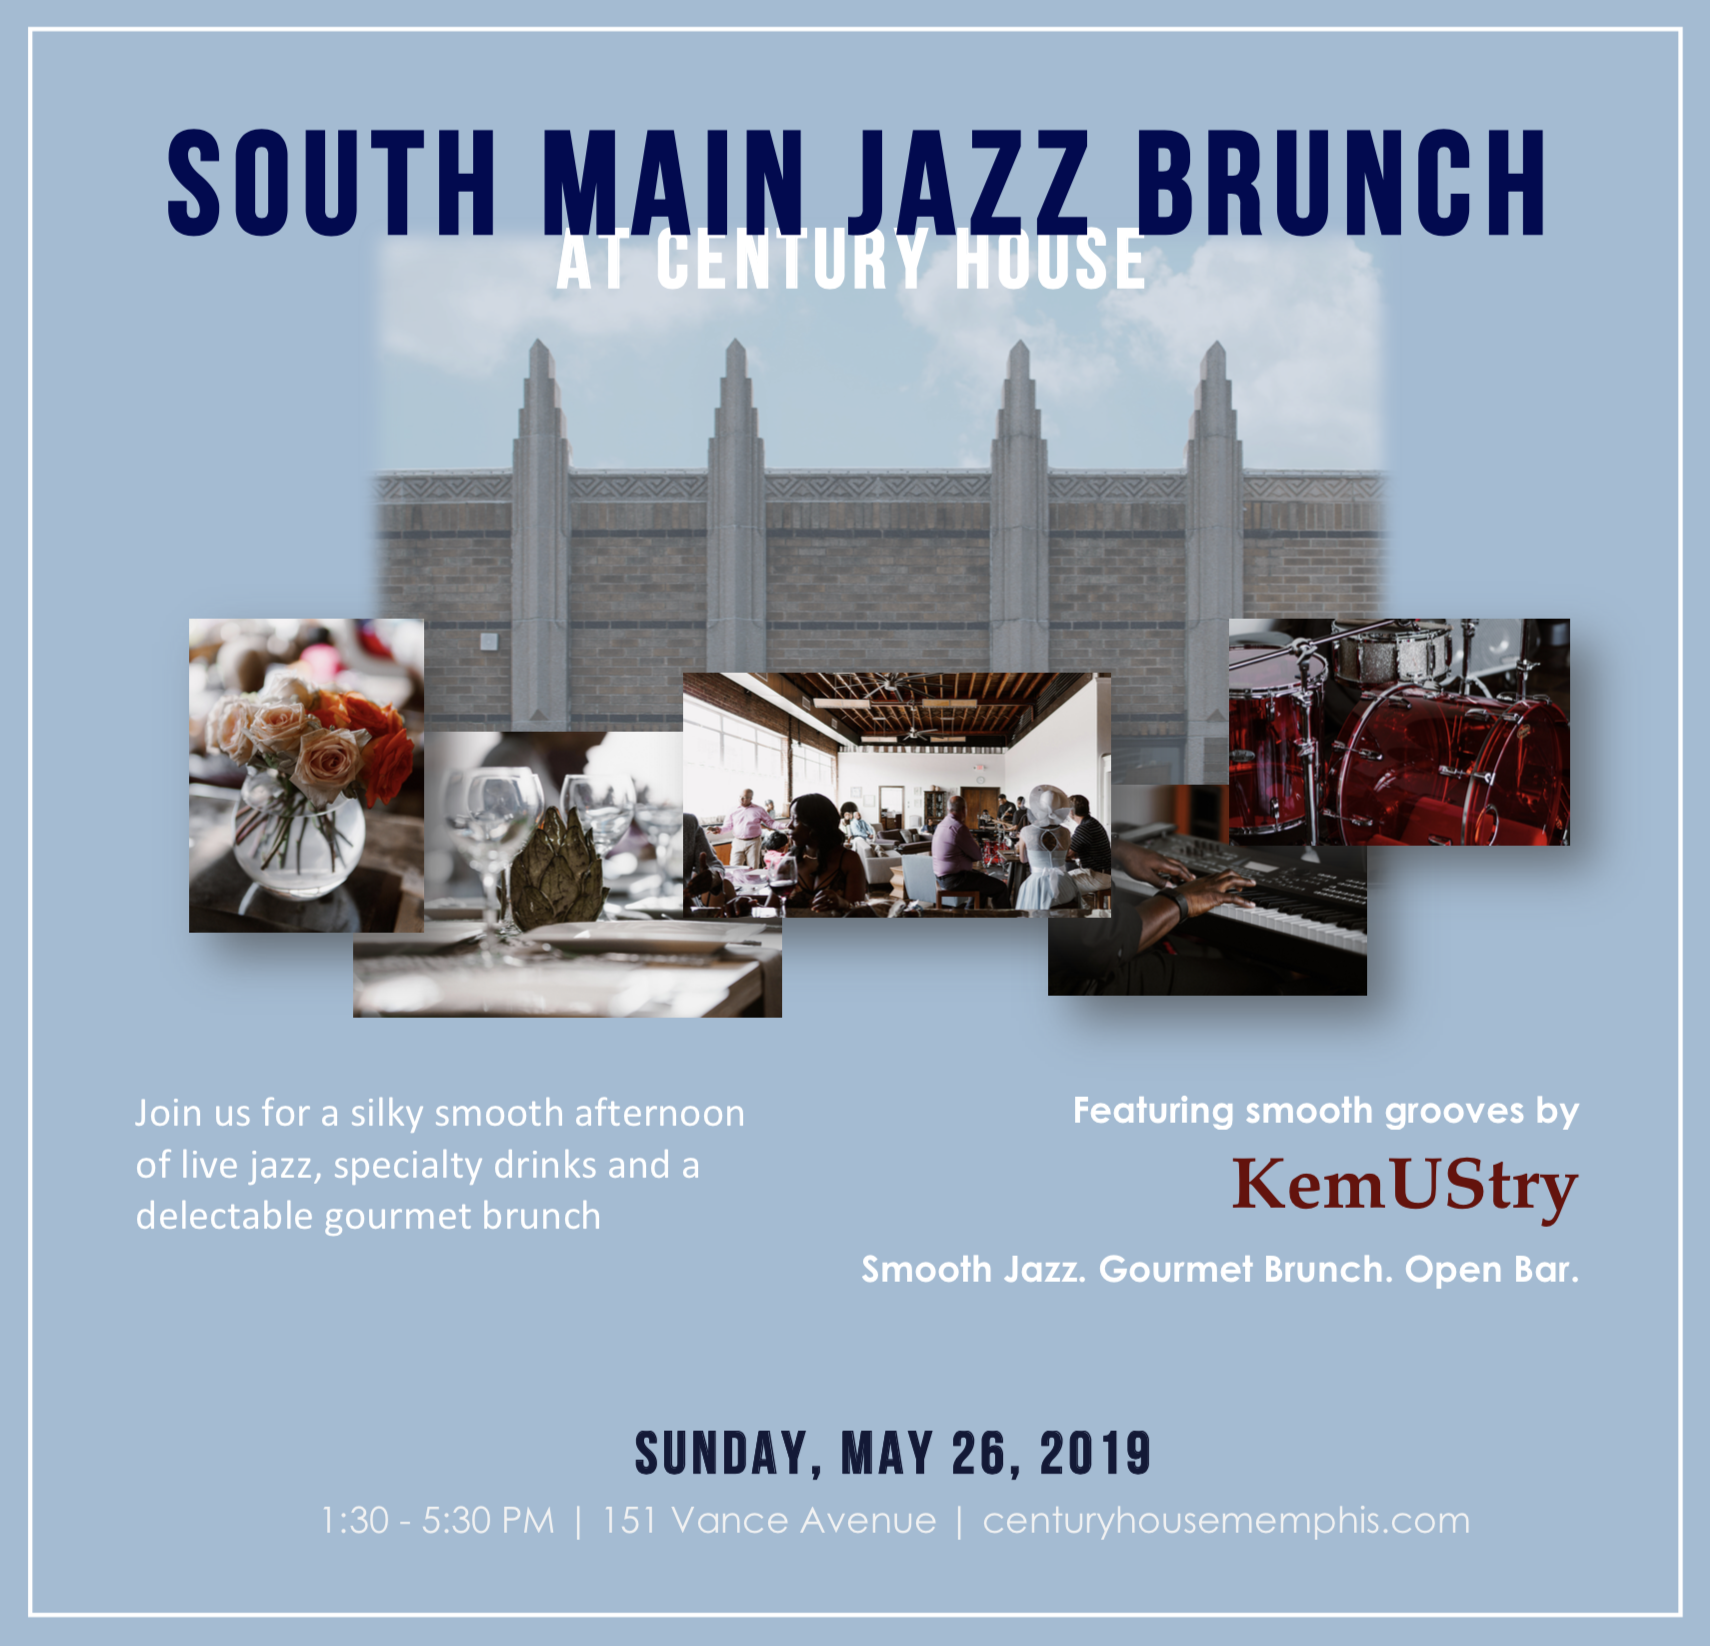 Join us for Memphis Jazz in South Main - Sunday, May 26 from 1:30 - 5:30 PM